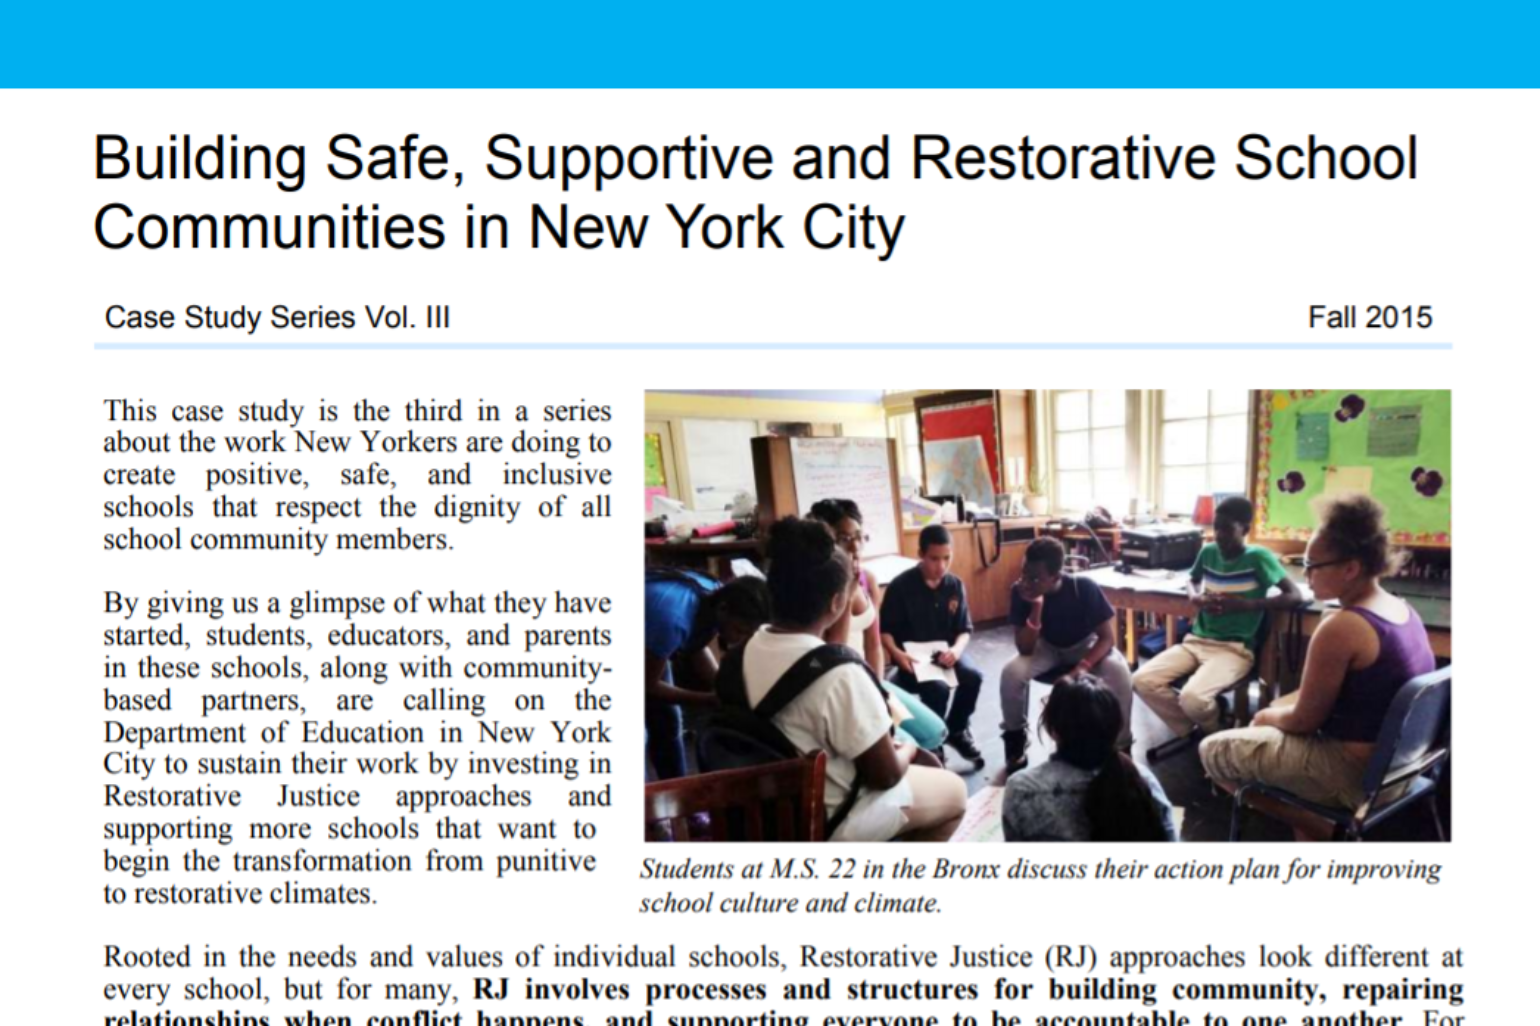 DSC NY- Building Safe, Supportive and Restorative School Communities in New York City, Vol. III